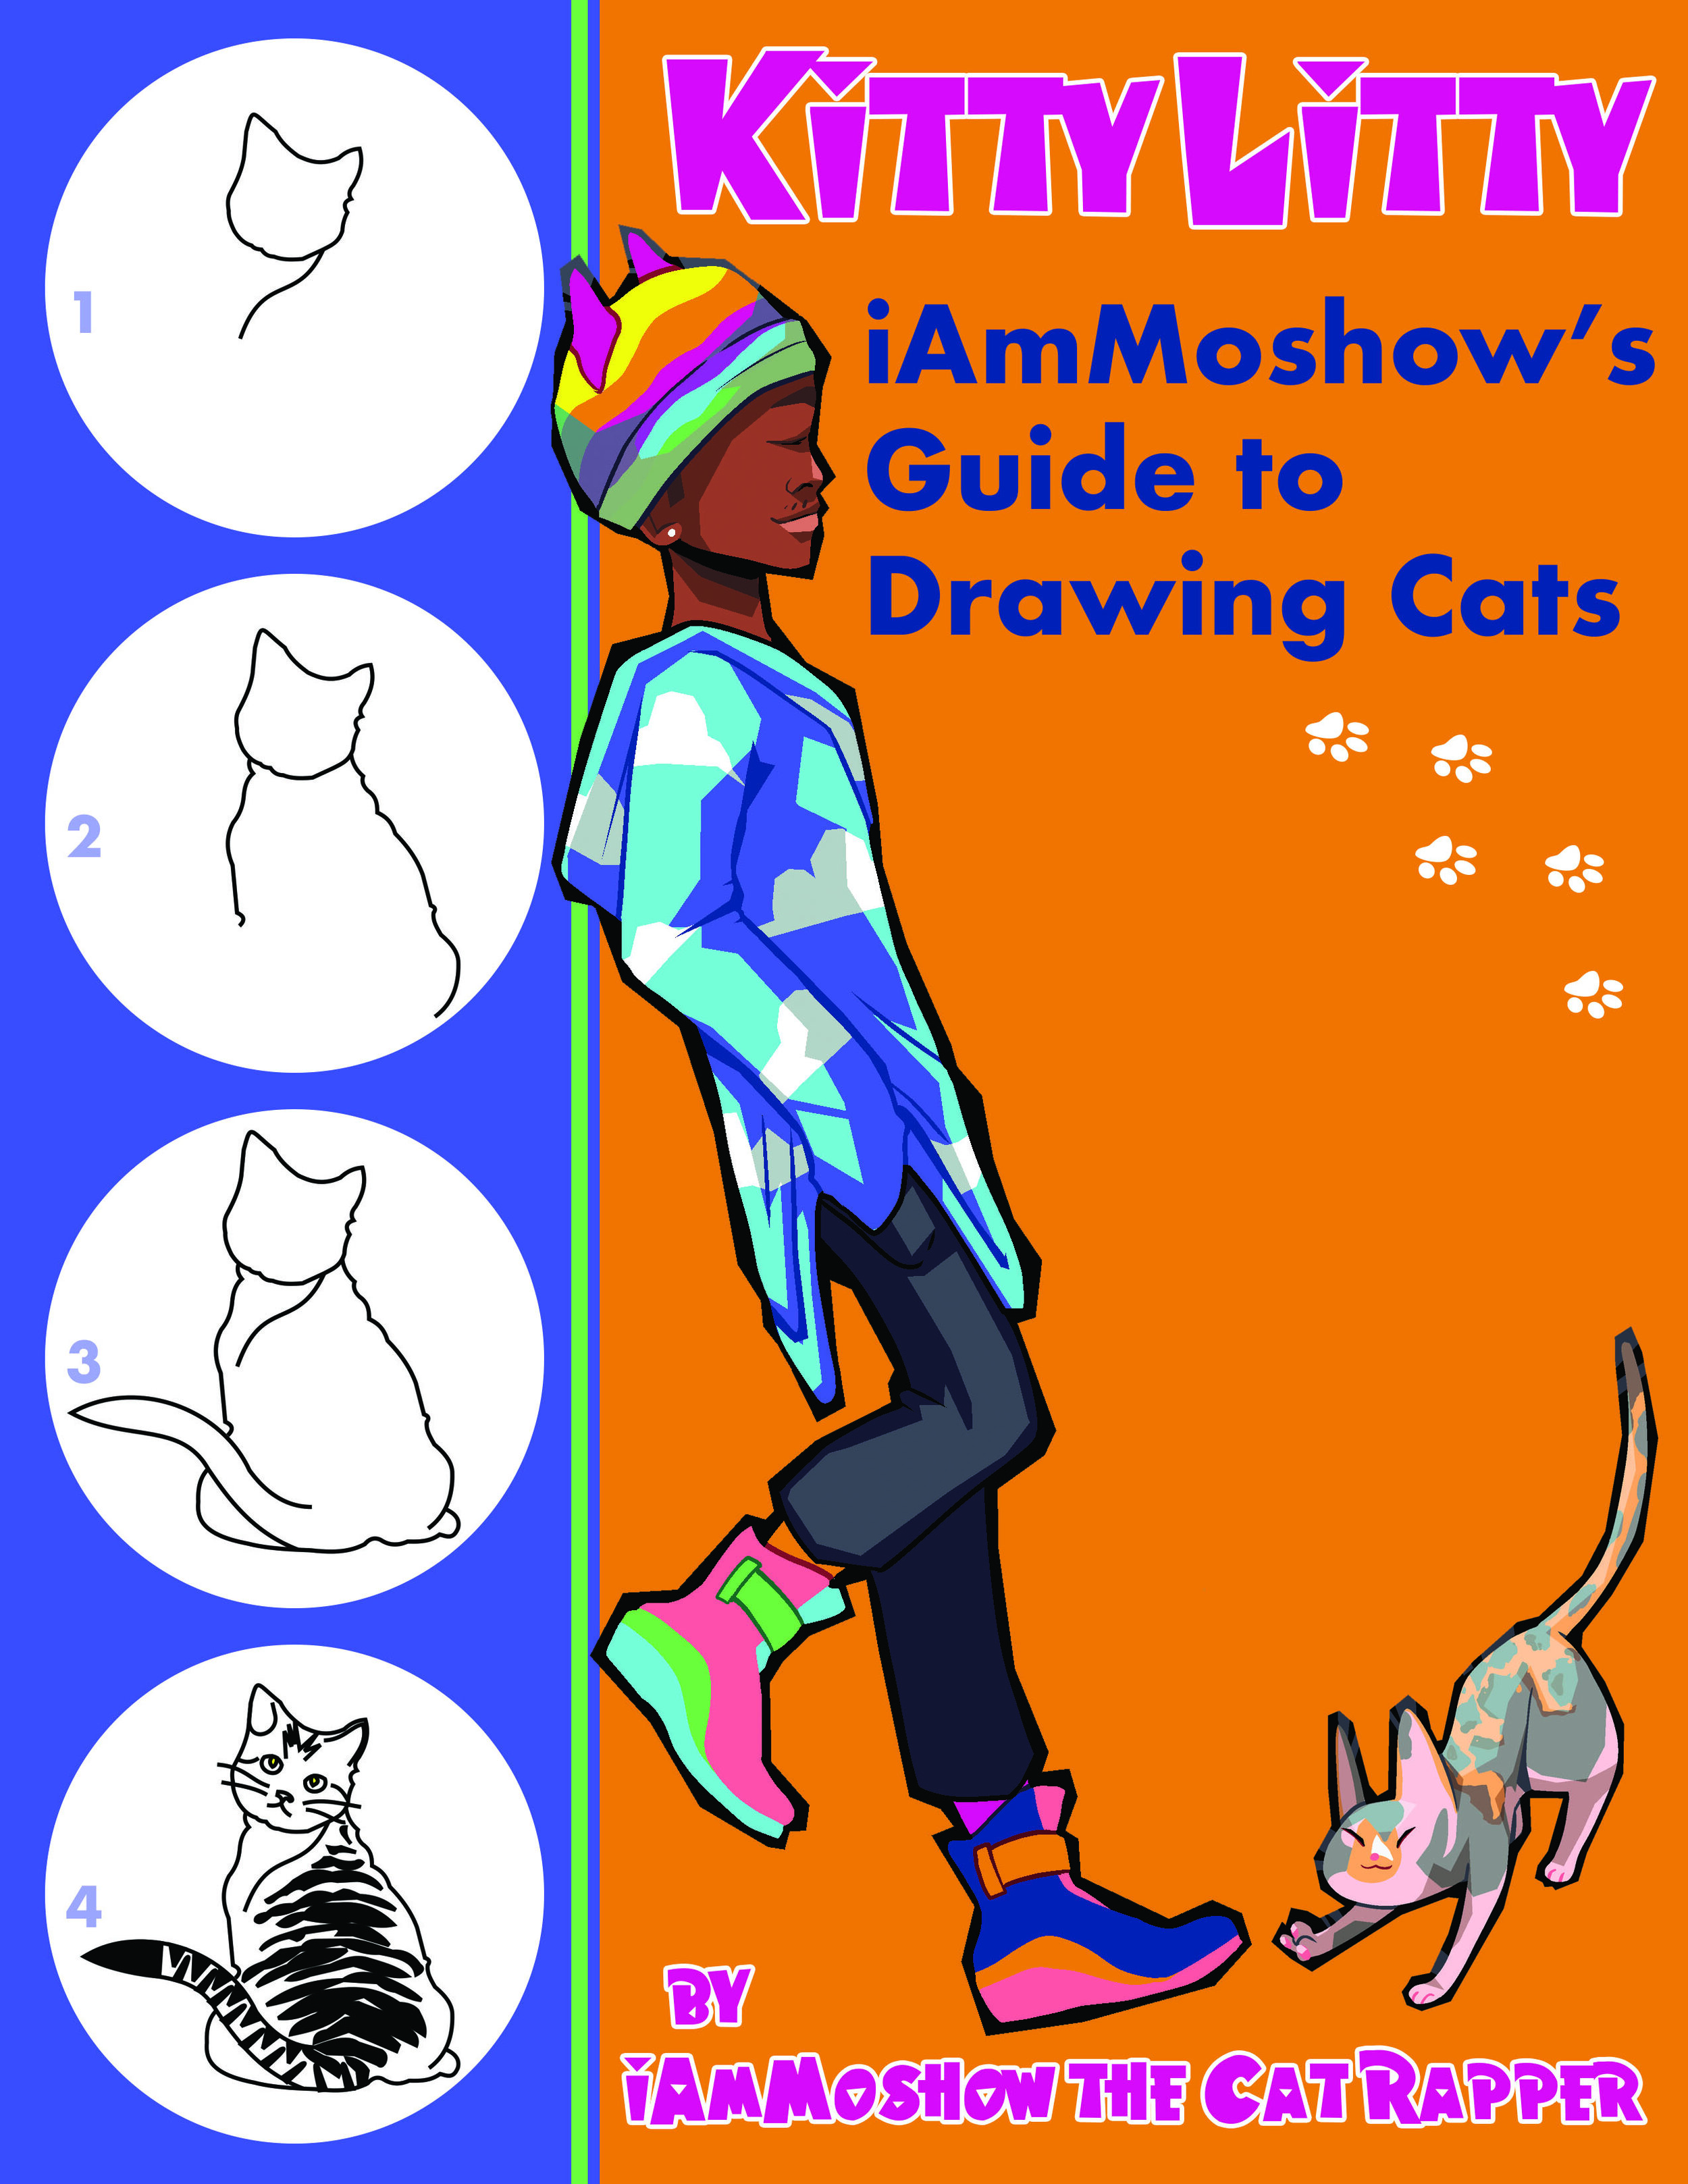 NEW ReLEASE… - Drawing cats is so much fun! iAmMoshow's Guide to Drawing Cats takes the mystery out of learning to draw. Check out these step-by-step instructions so you can learn to draw your favorite cat breeds. Each lesson starts with an easy-to-draw shape that becomes the foundation for the drawing. From there, the artist progressively enhances their drawing with each step, soon revealing a well-crafted cat illustration! Budding artists of any age will benefit from Moshow's instruction.